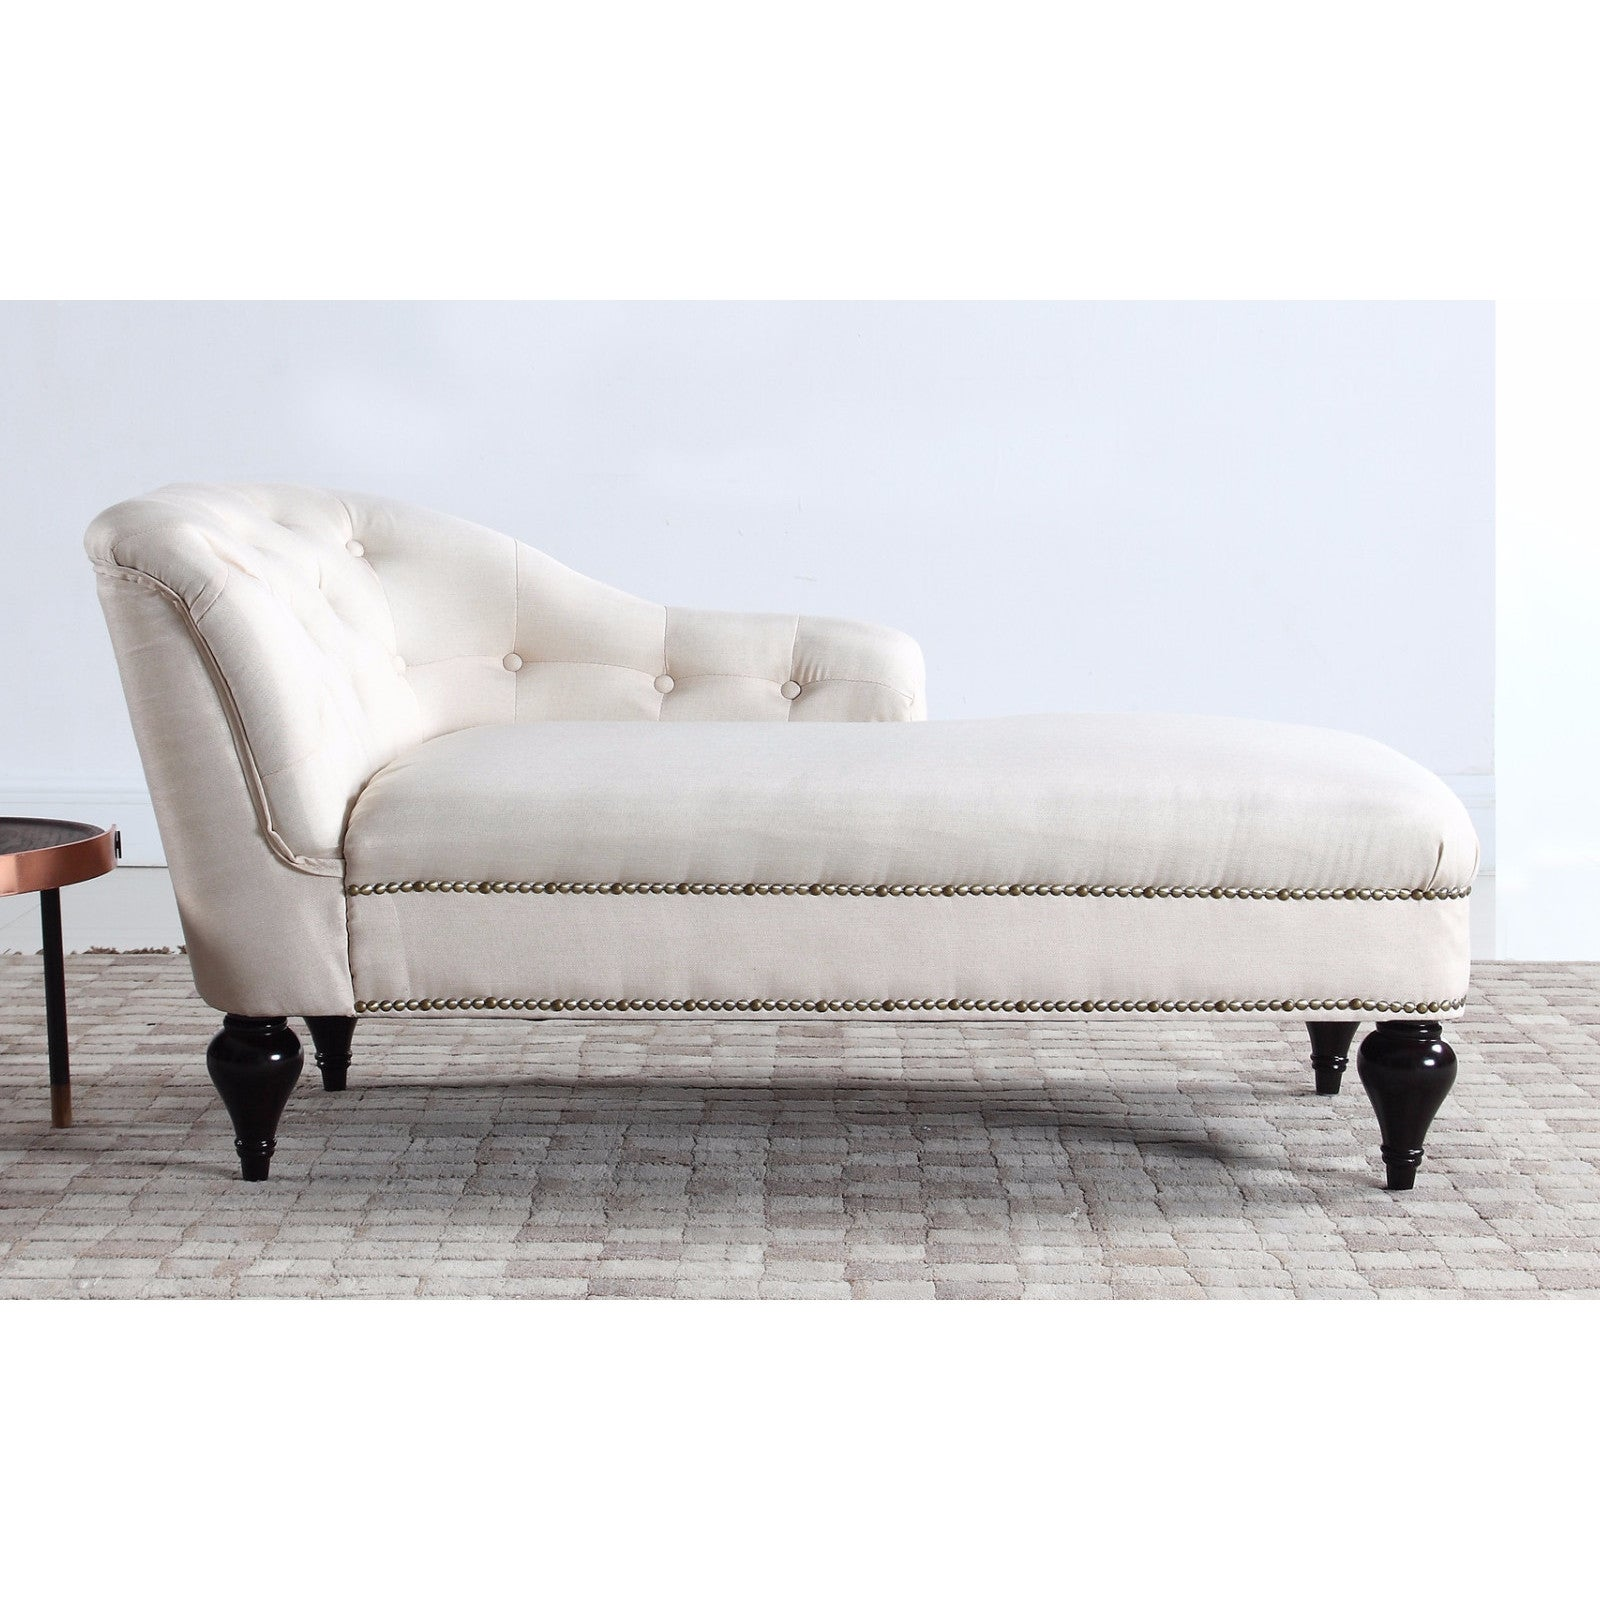 - Shop Modern And Elegant Kid's Chaise Lounge For Living Room Or